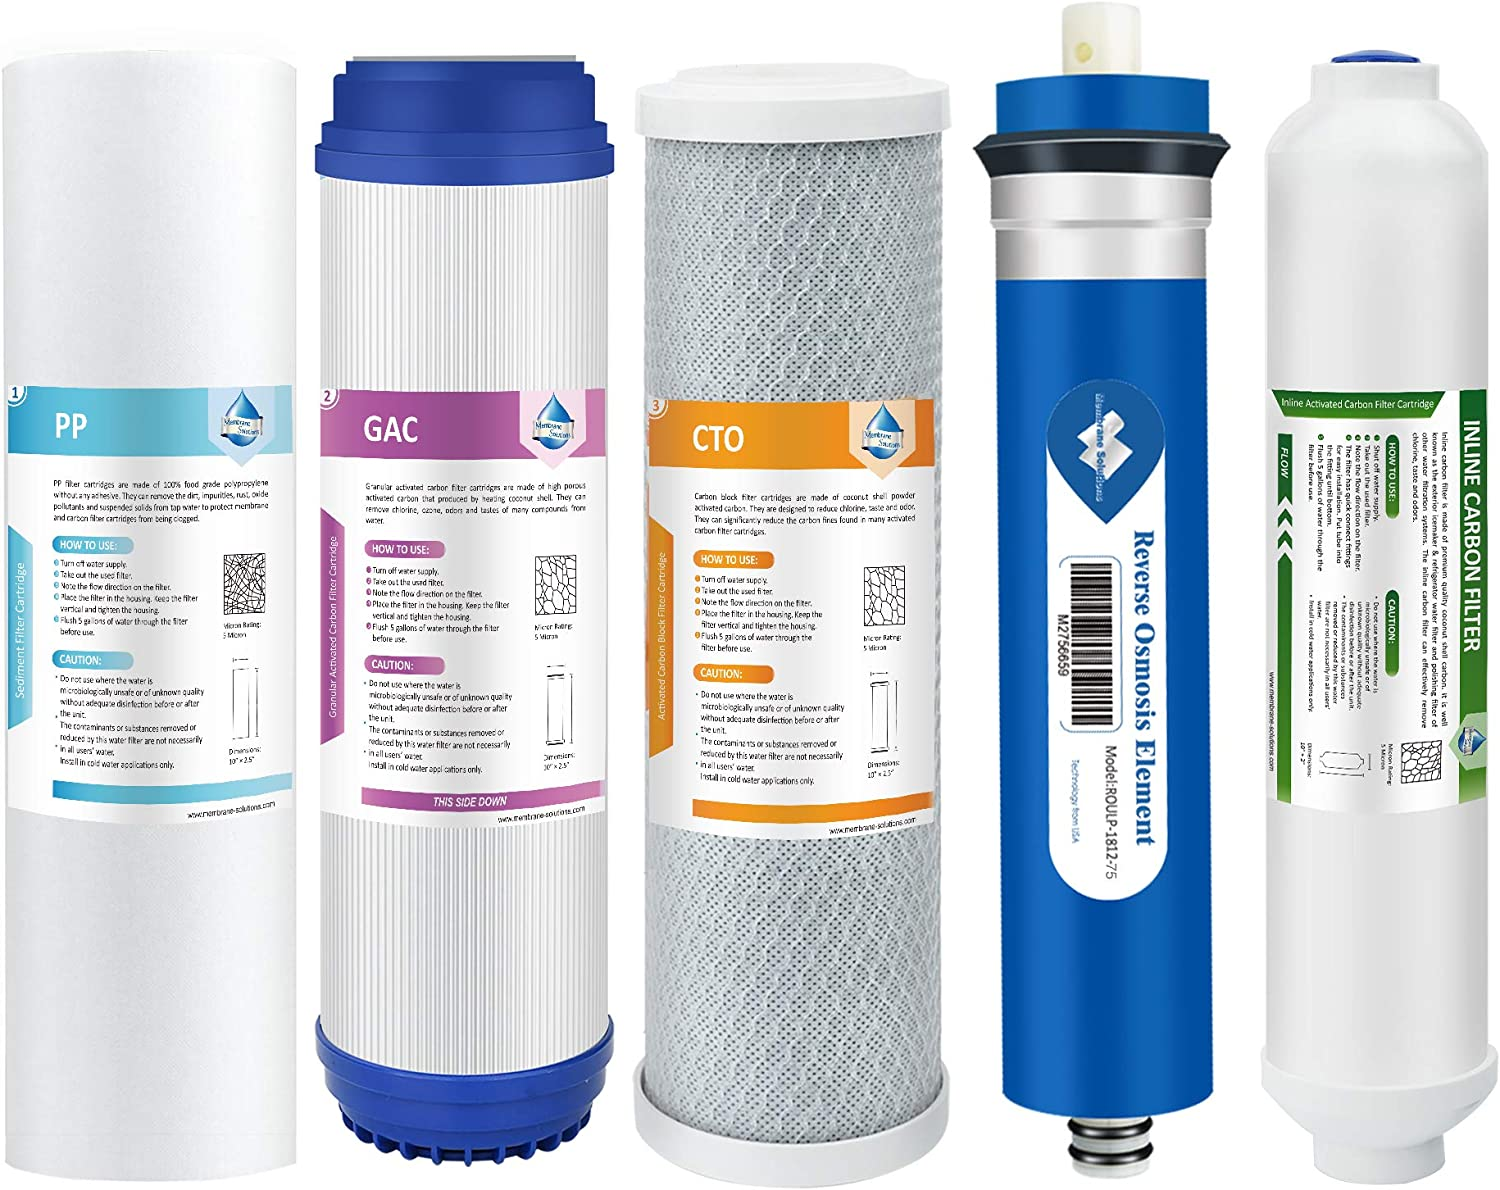 Membrane Solutions Reverse Osmosis Filter Replacement, 75 GPD Complete Replacement Filter Set for Under Sink 5-Stage Reverse Osmosis Replacement Water Filter System